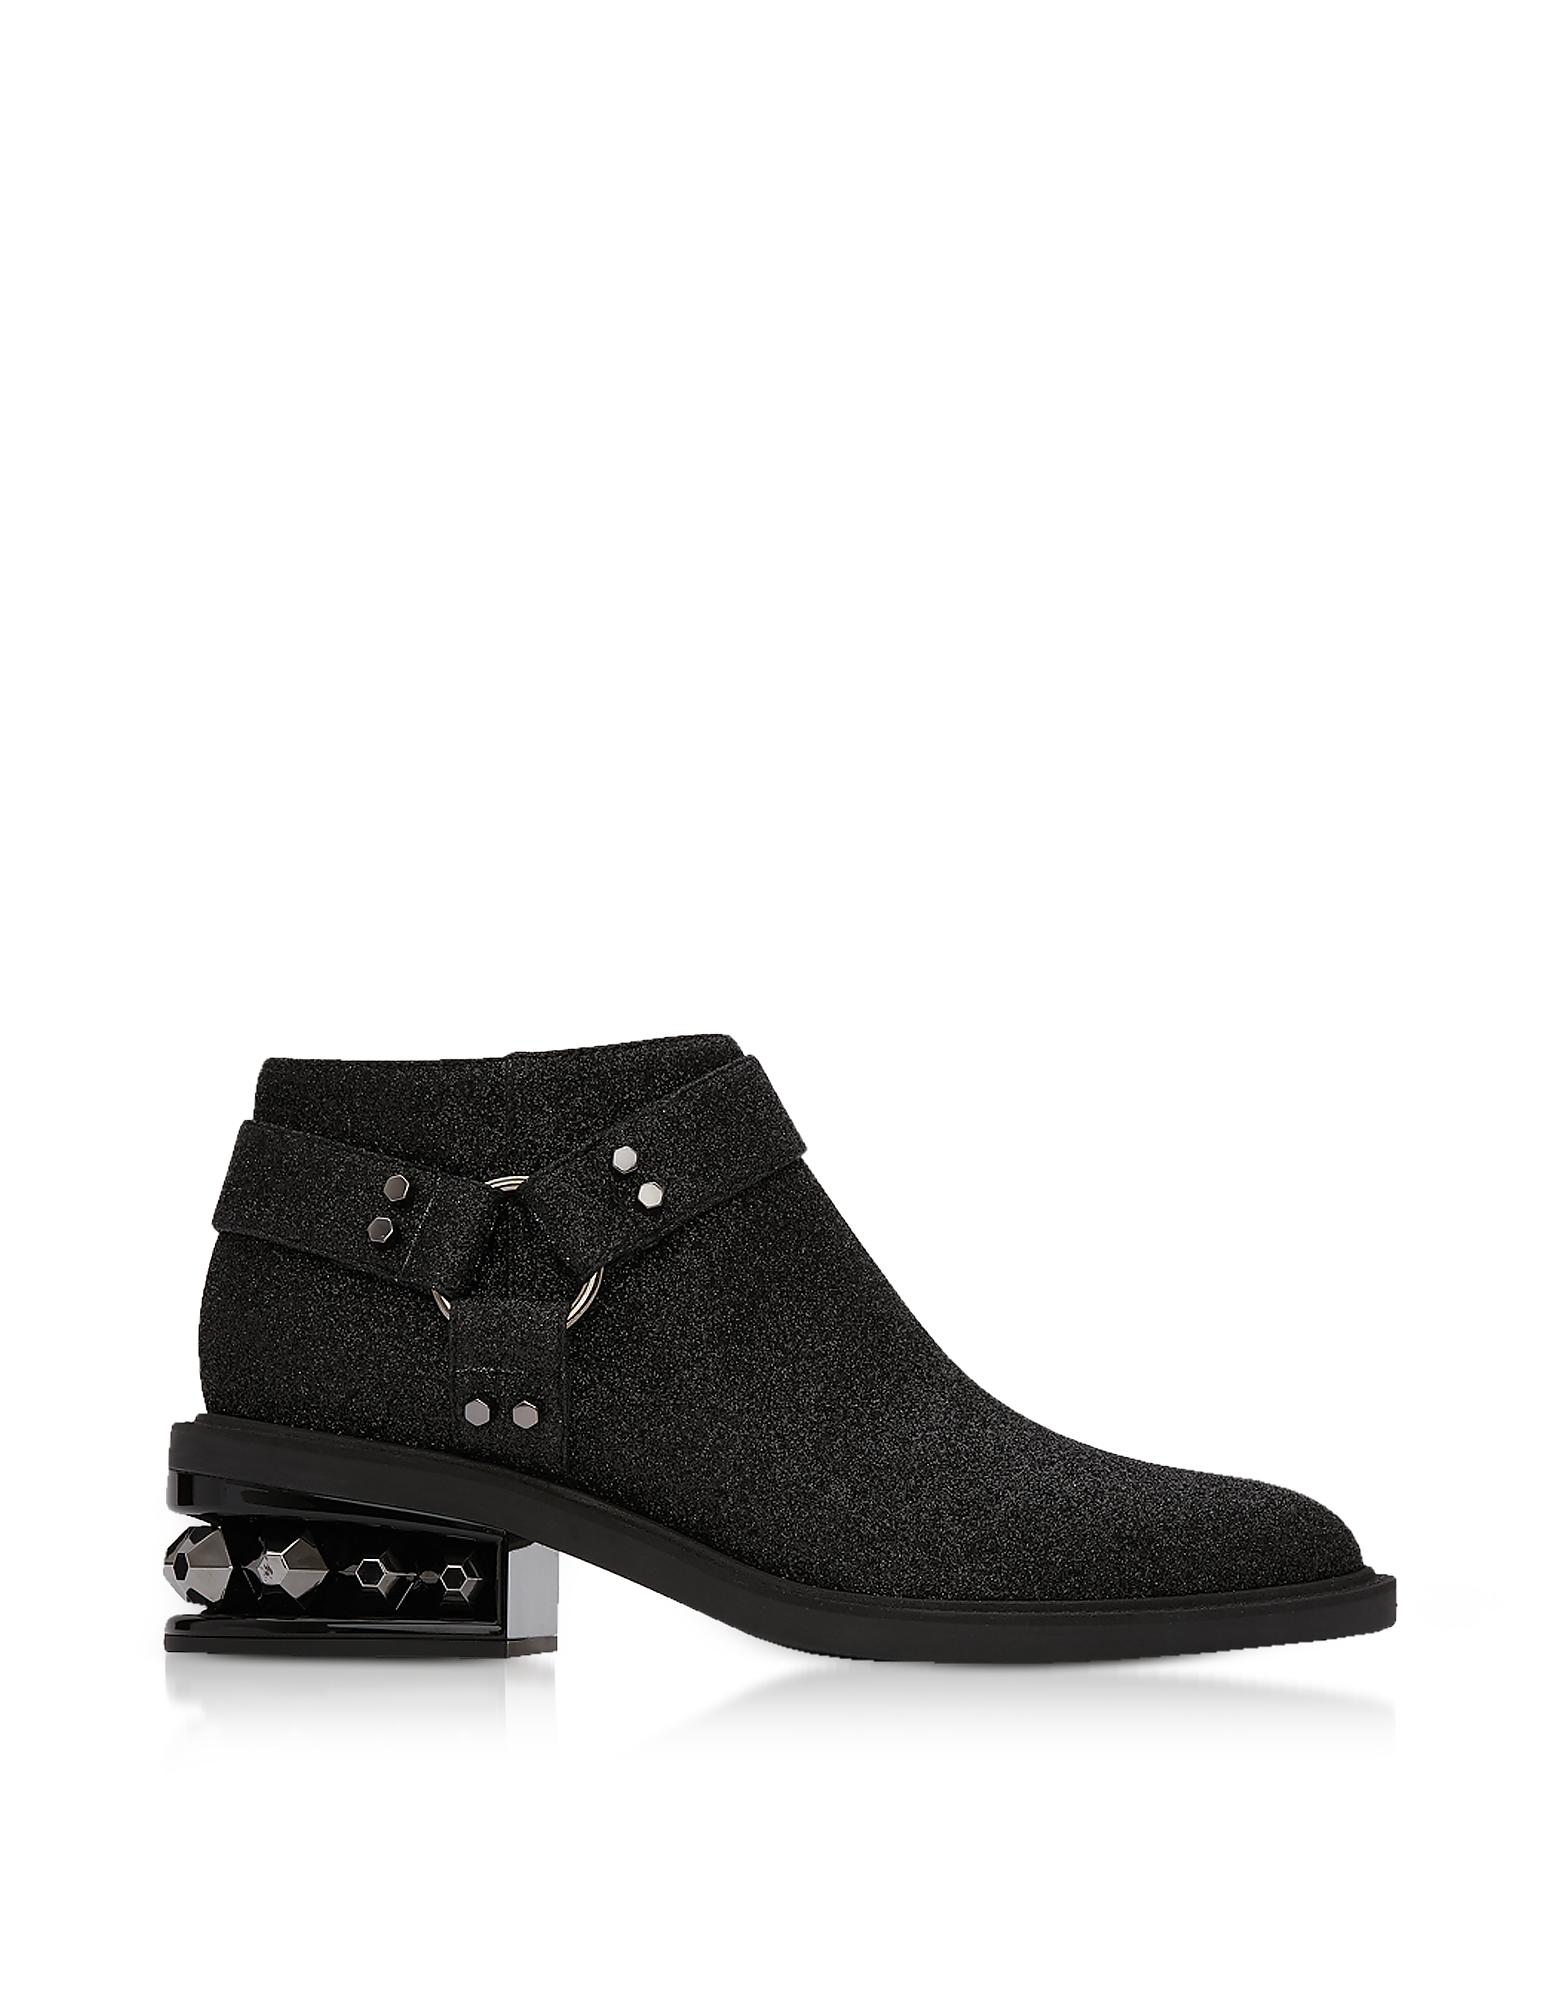 Nicholas Kirkwood Shoes, Black Glitter Textured Canvas and Leather 35mm Suzi Low Biker Boots